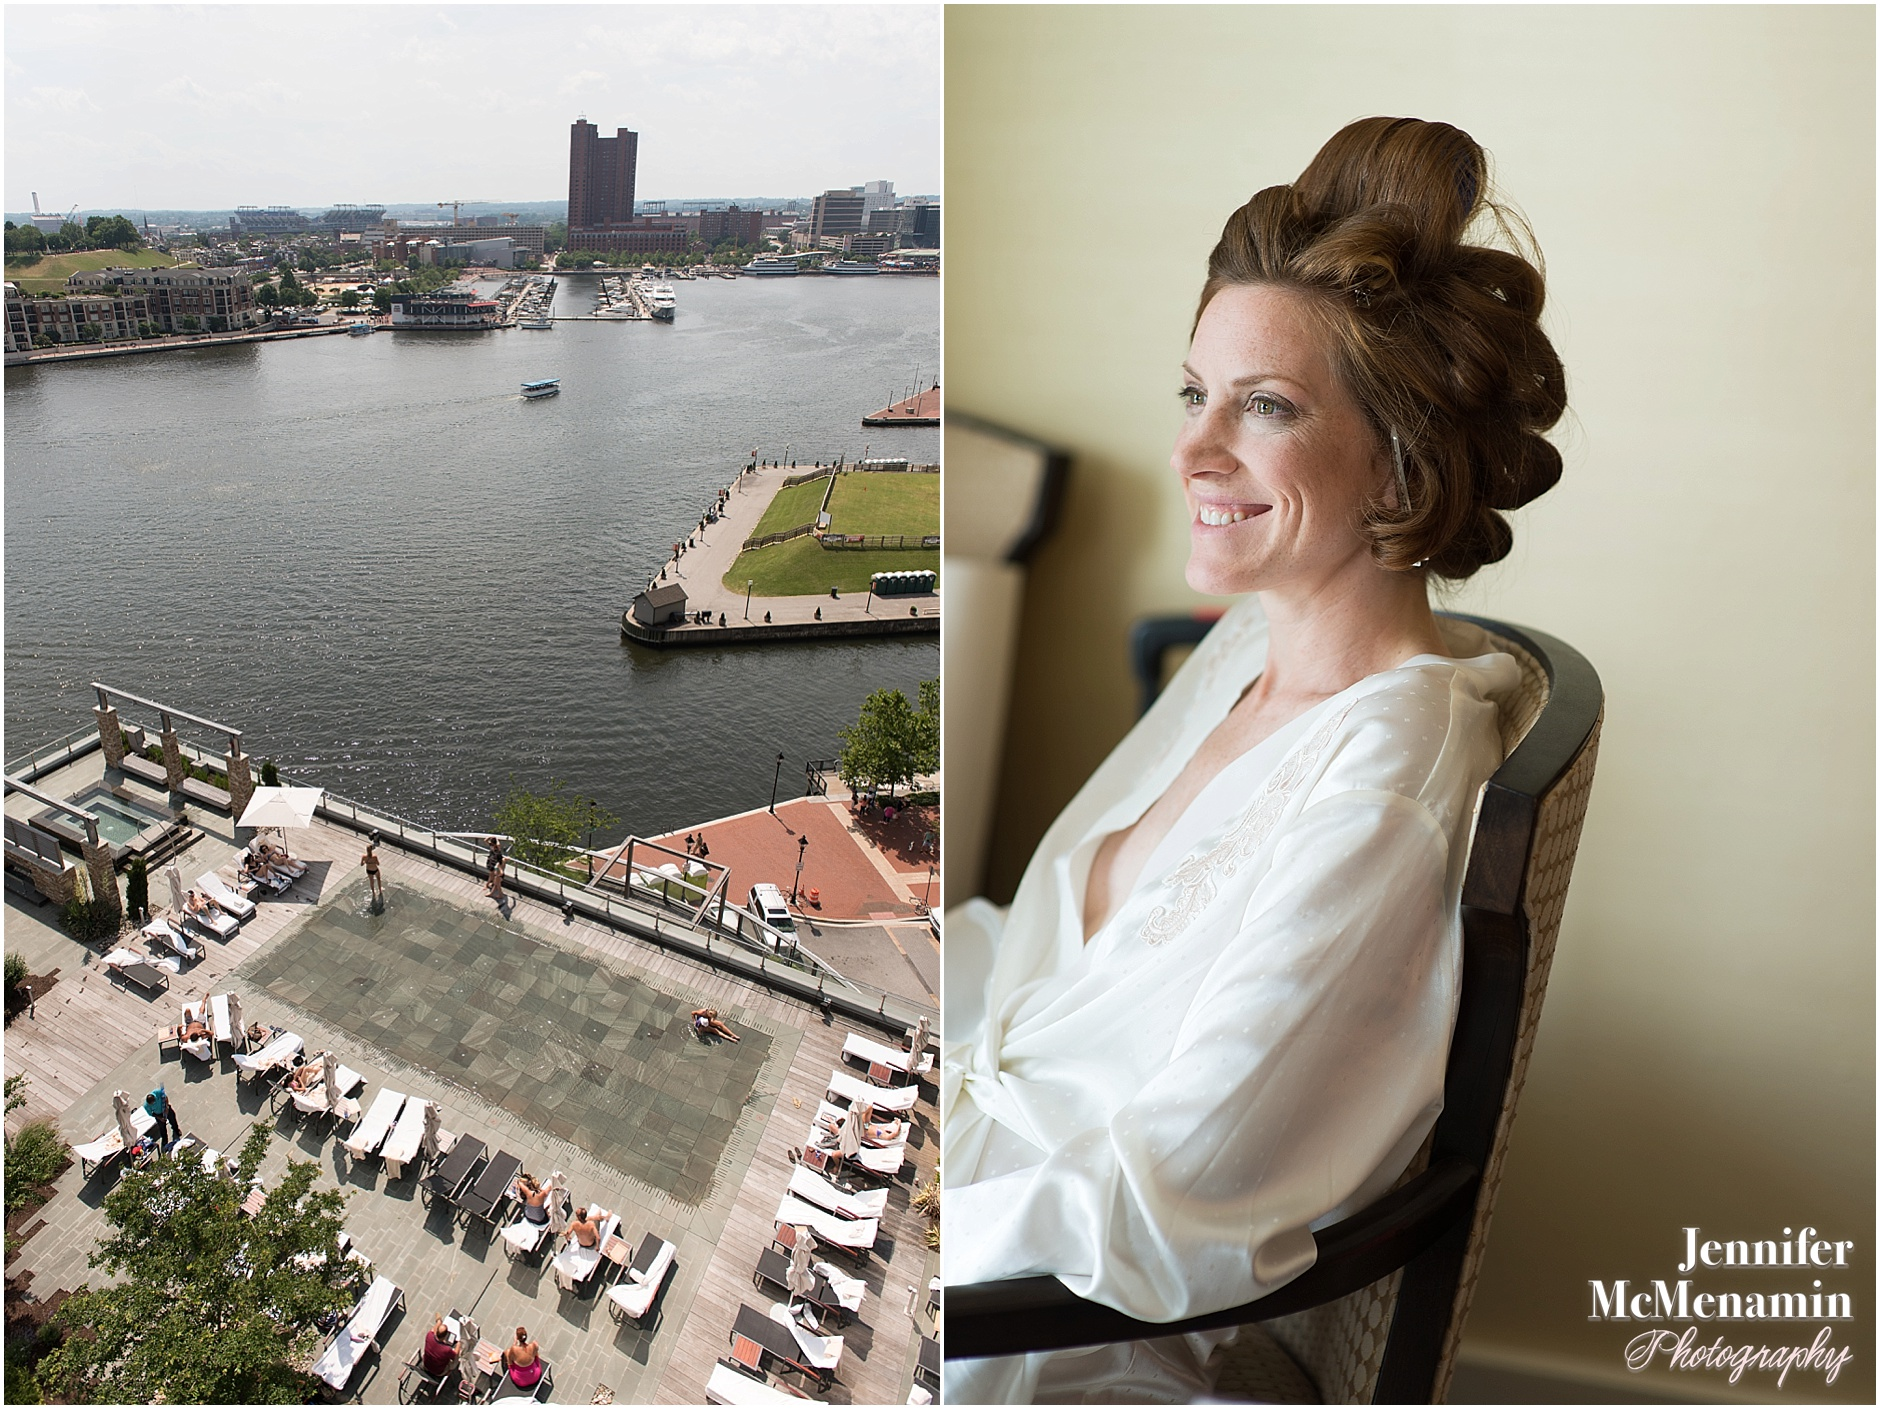 002-Four-Seasons-Baltimore-wedding-Jennifer-McMenamin-Photography